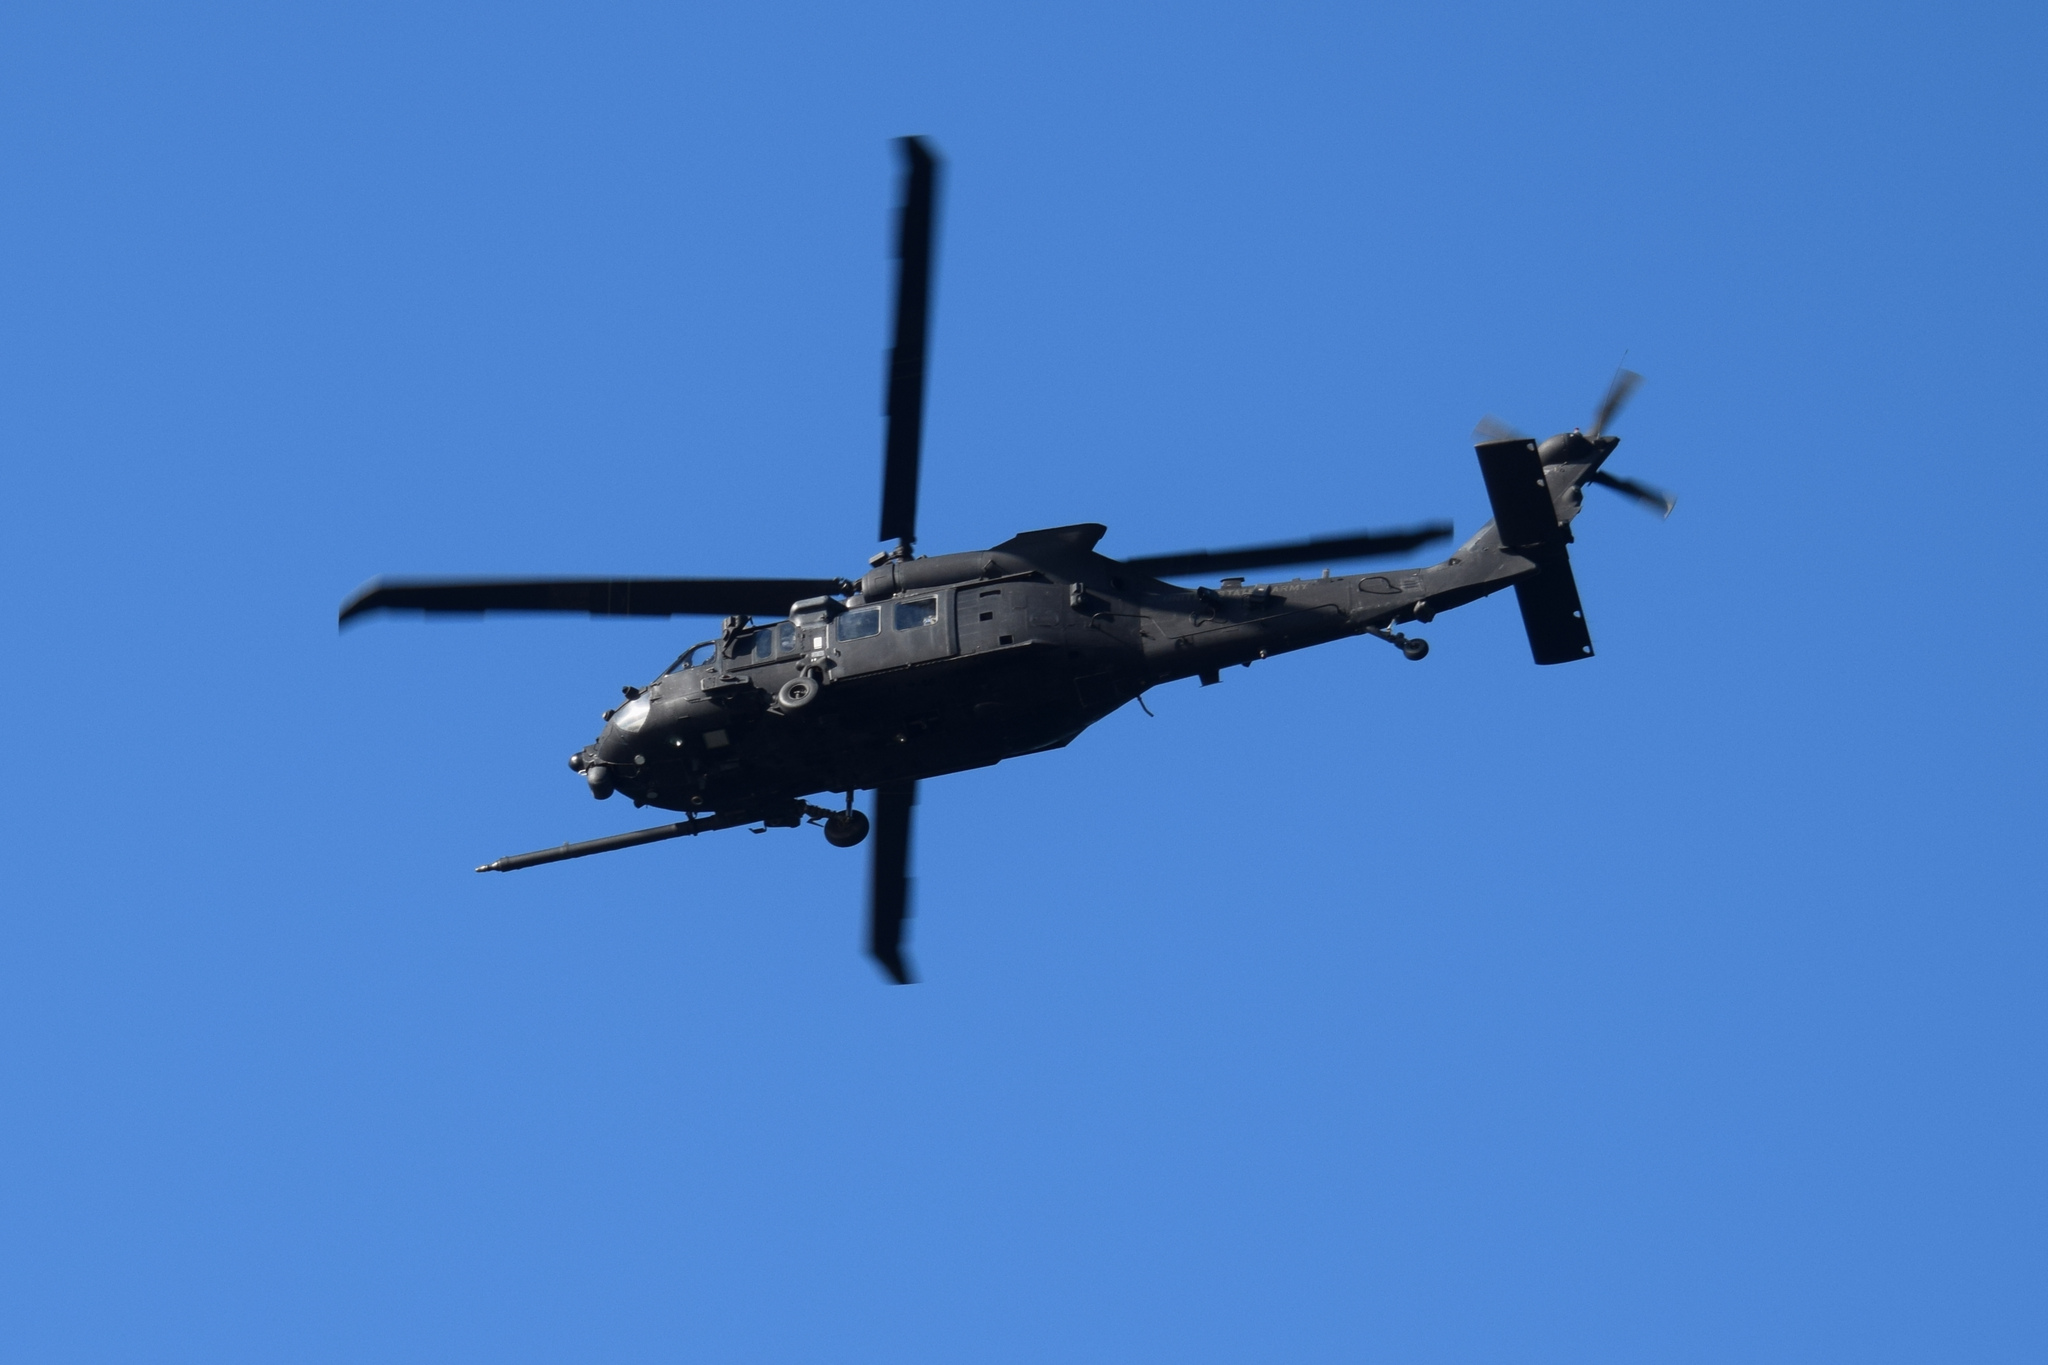 A Sikorsky UH-60 Black Hawk helicopter. (Tony Alter/Flickr)